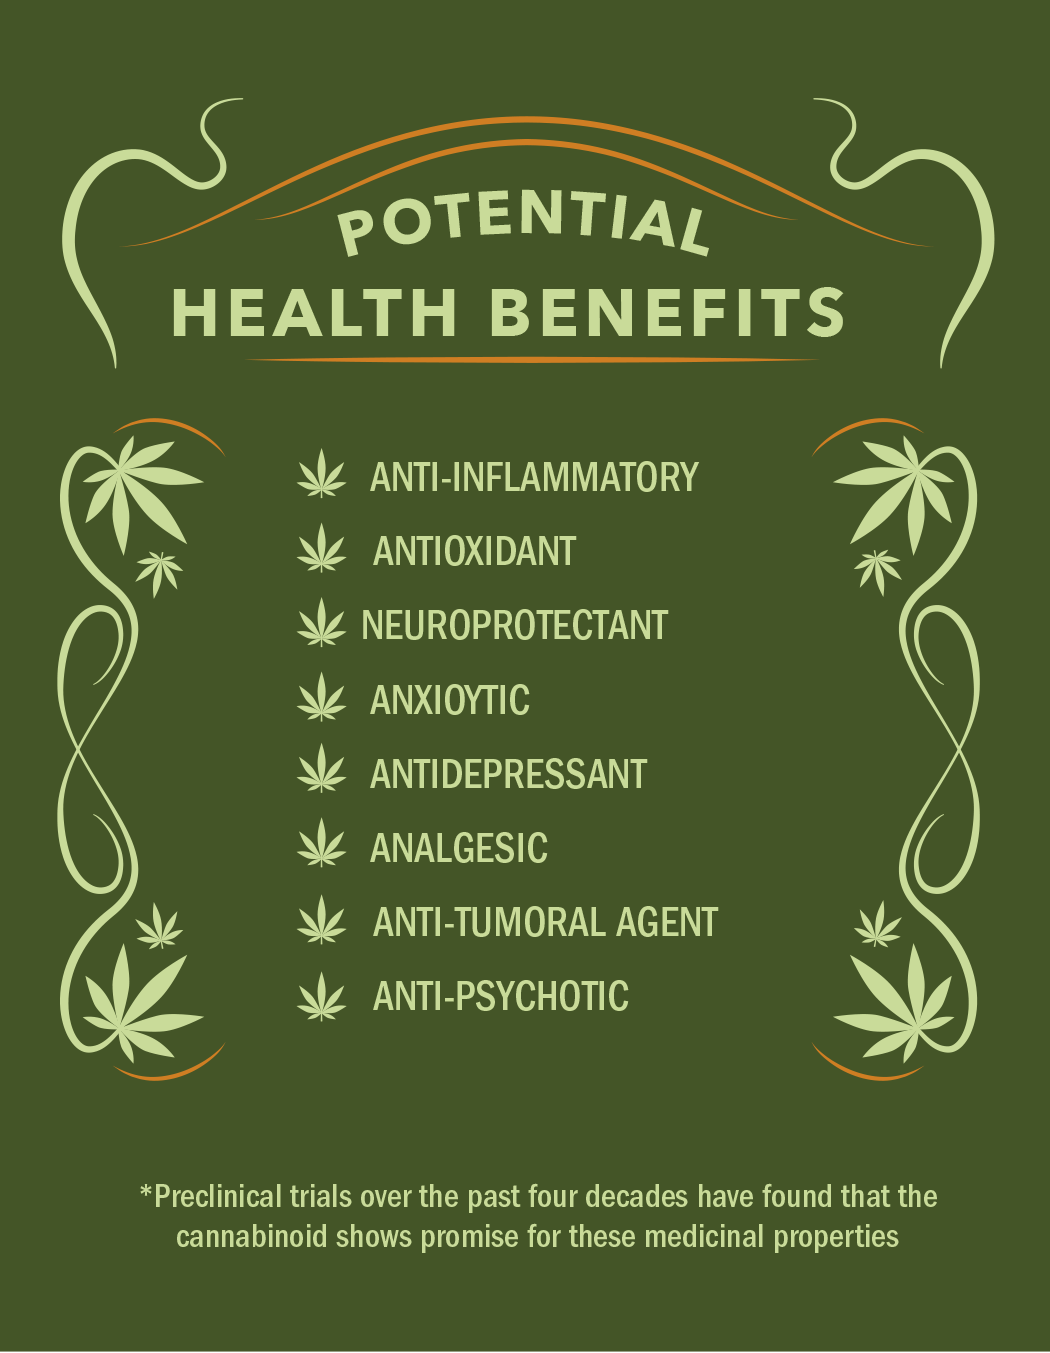 Potential Health Benefits